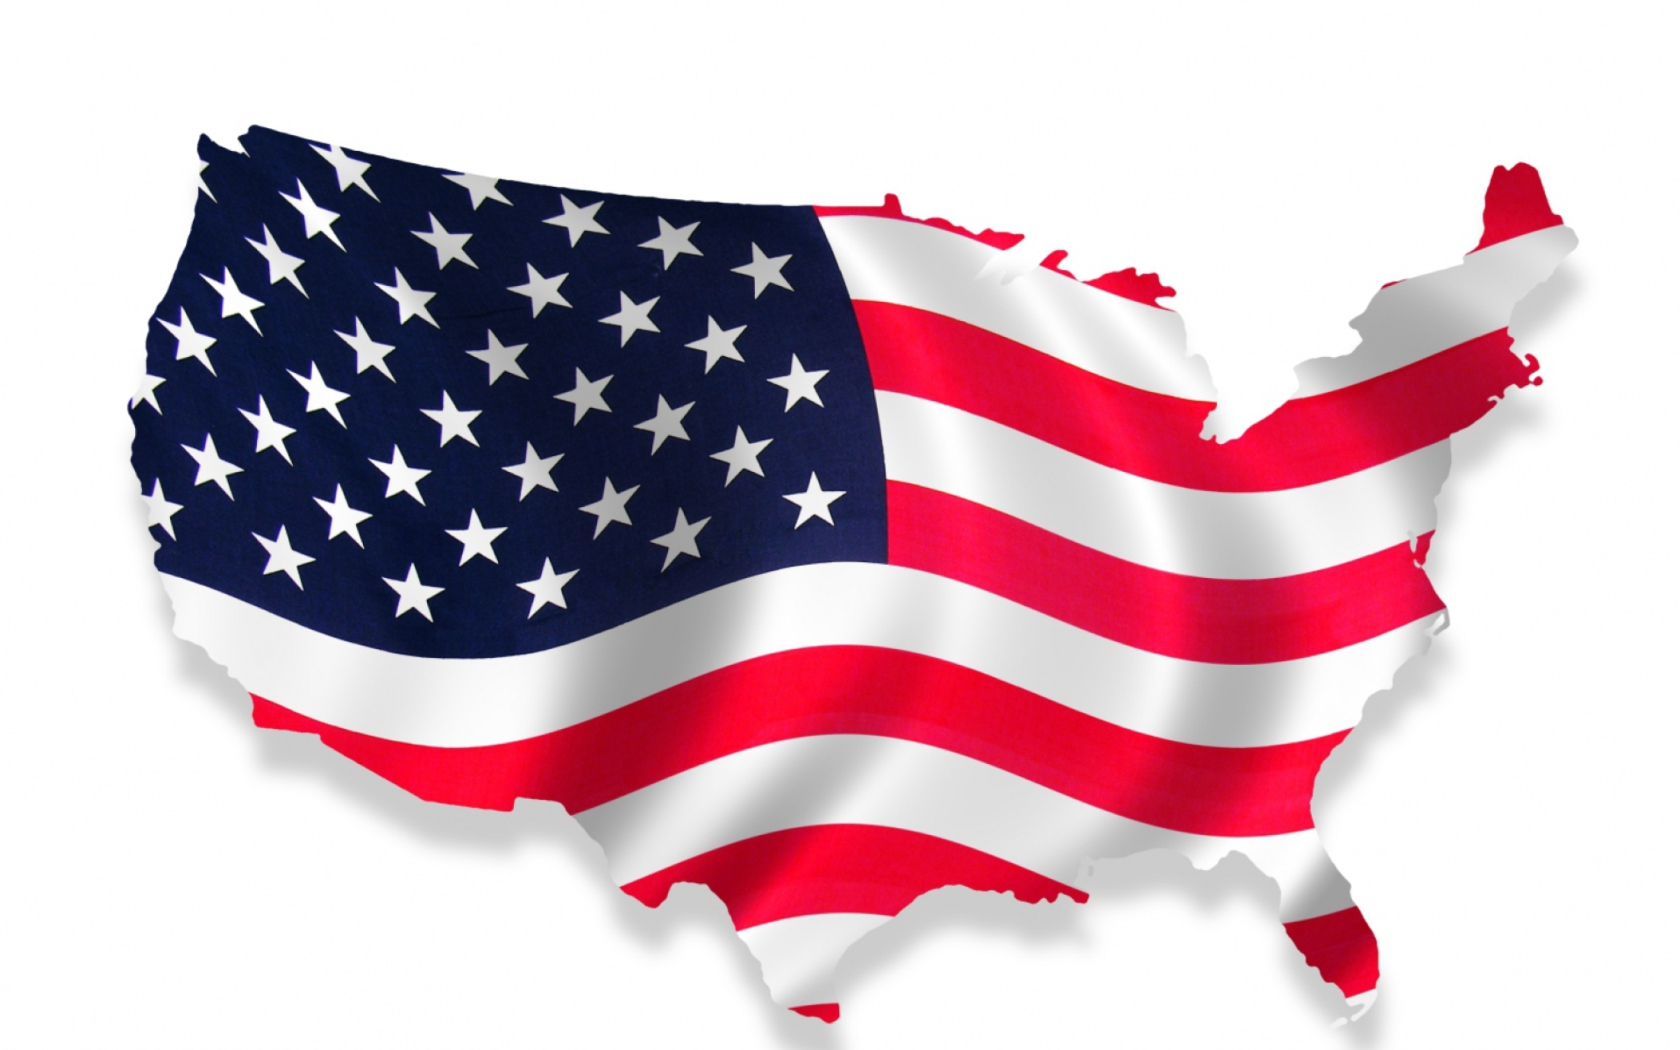 canada should become part of usa essay The united states' invasion of canada 200 years ago went a few calls for part or all of canada  not fought each other since and have become strong.